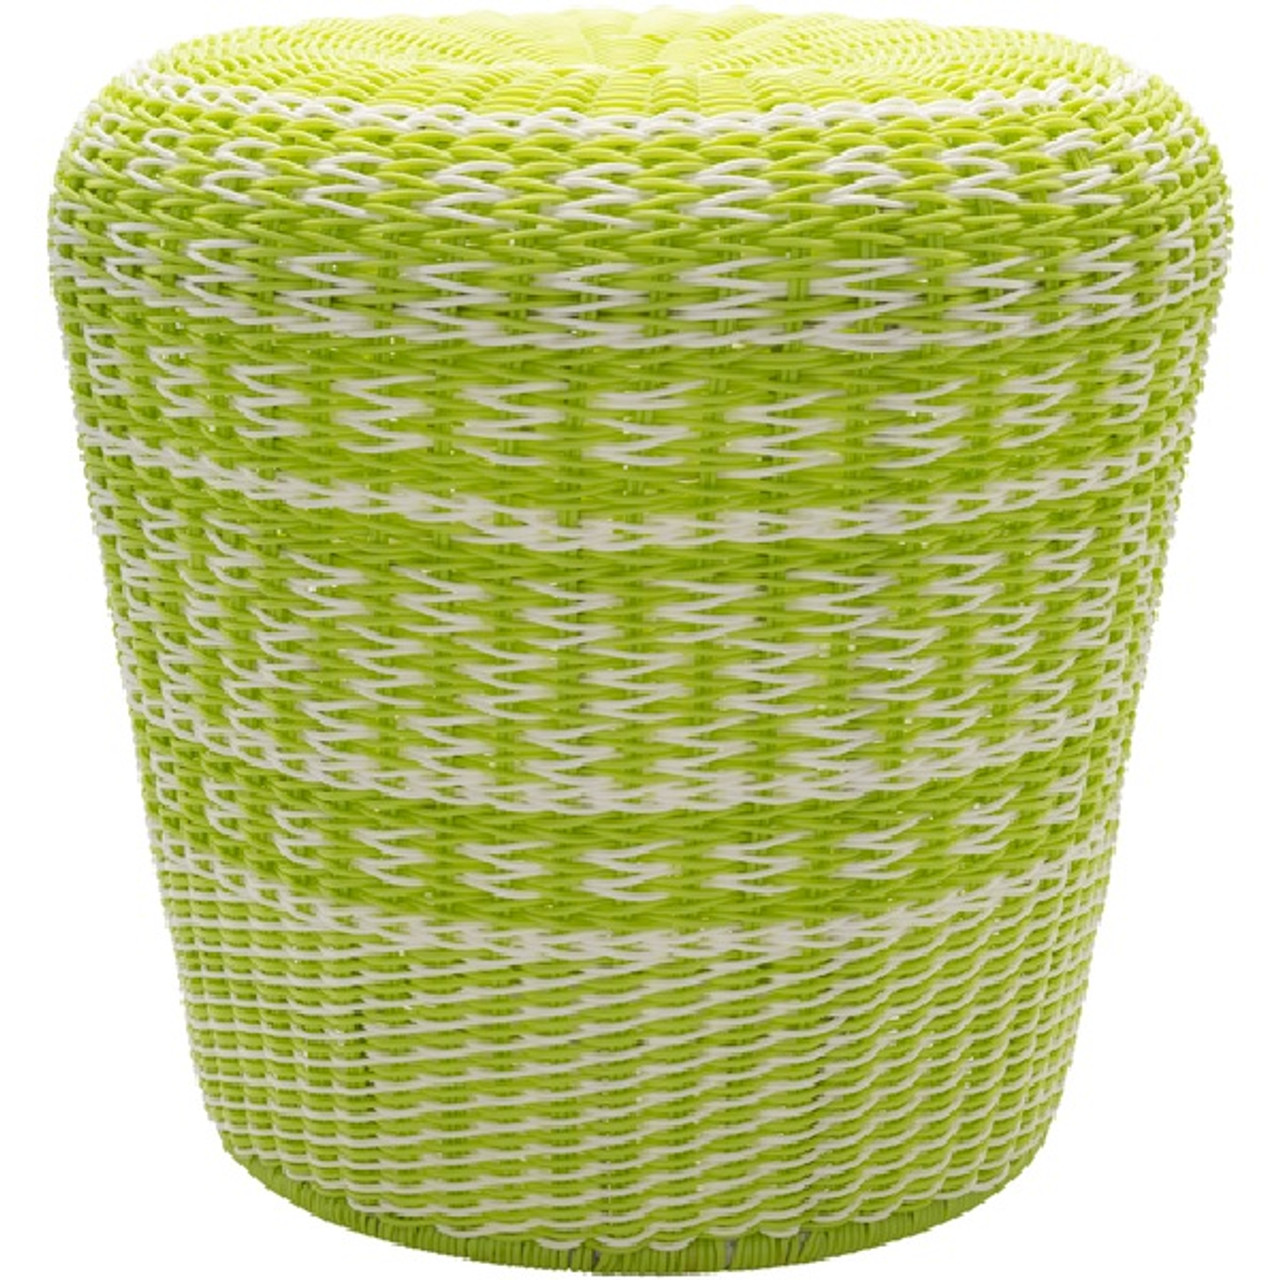 Swell 18 Parkdale Lime Green And White Outdoor Decorative Patio And Garden Stool 32216275 Pabps2019 Chair Design Images Pabps2019Com